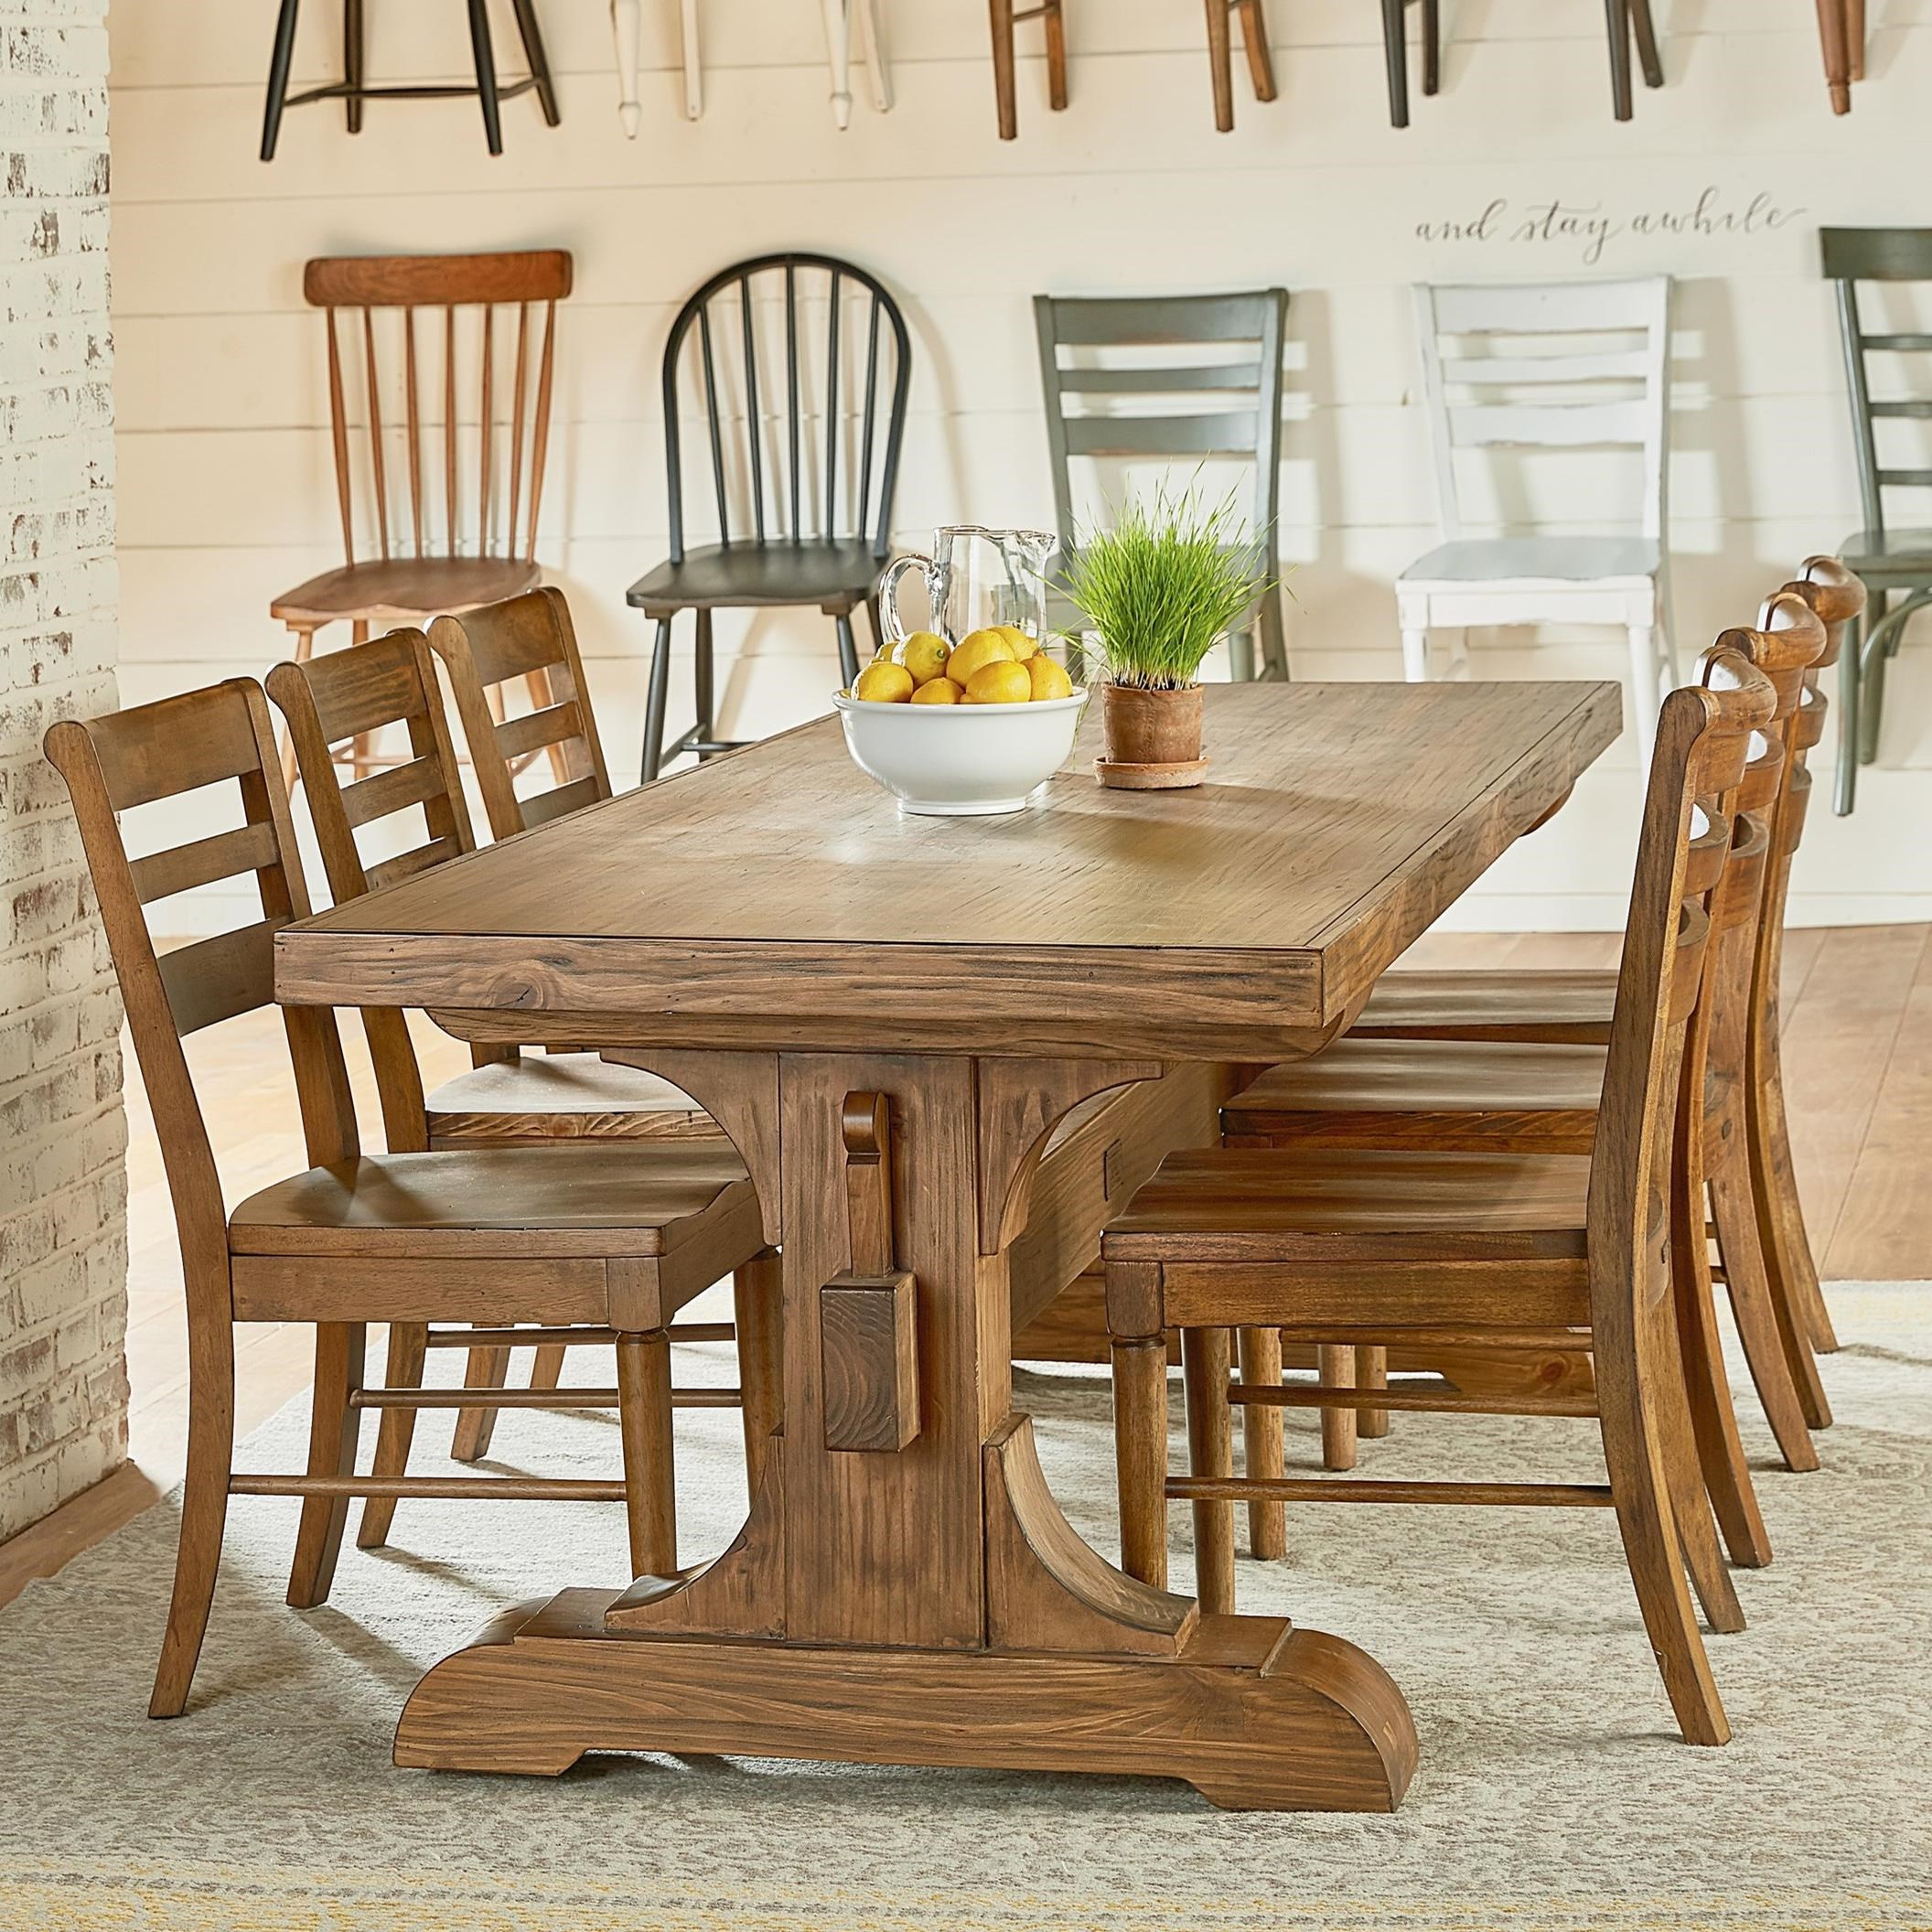 Farmhouse Dining Table And Chairs: Magnolia Home By Joanna Gaines Farmhouse Seven Piece Trestle Table And Chair Set